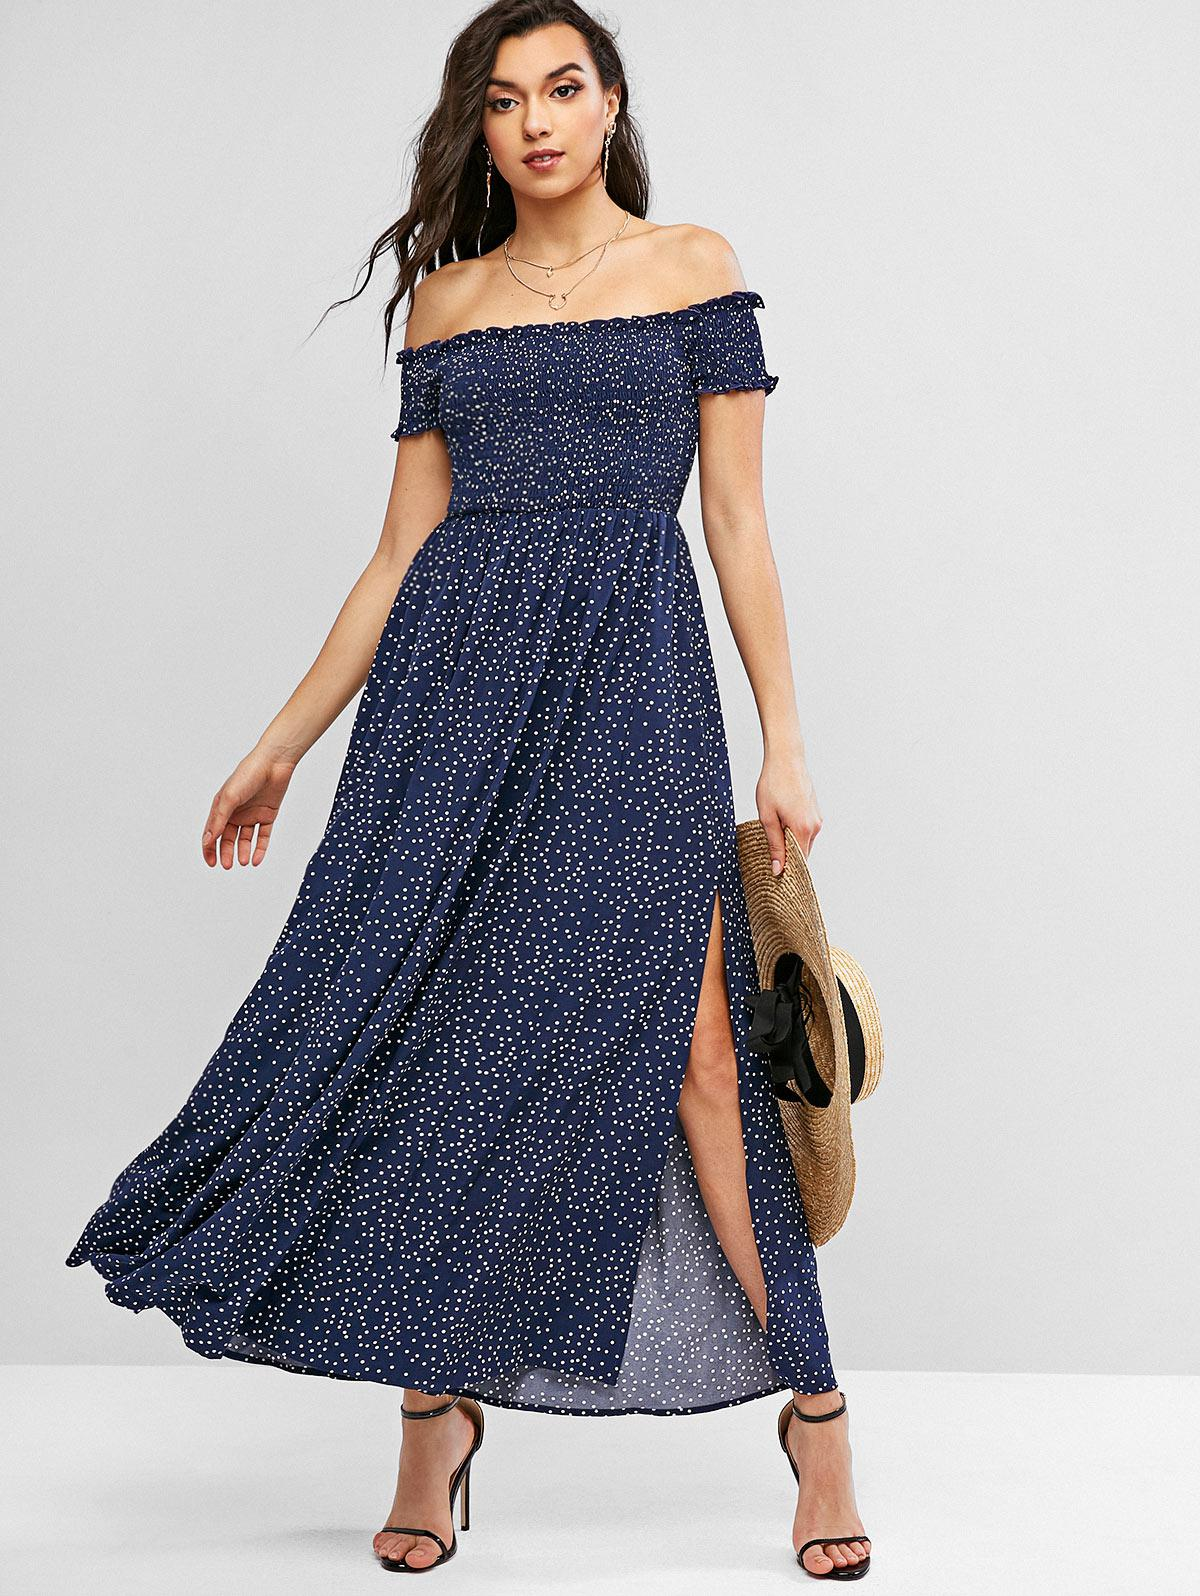 ZAFUL Polka Dot Smocked Off Shoulder Dress